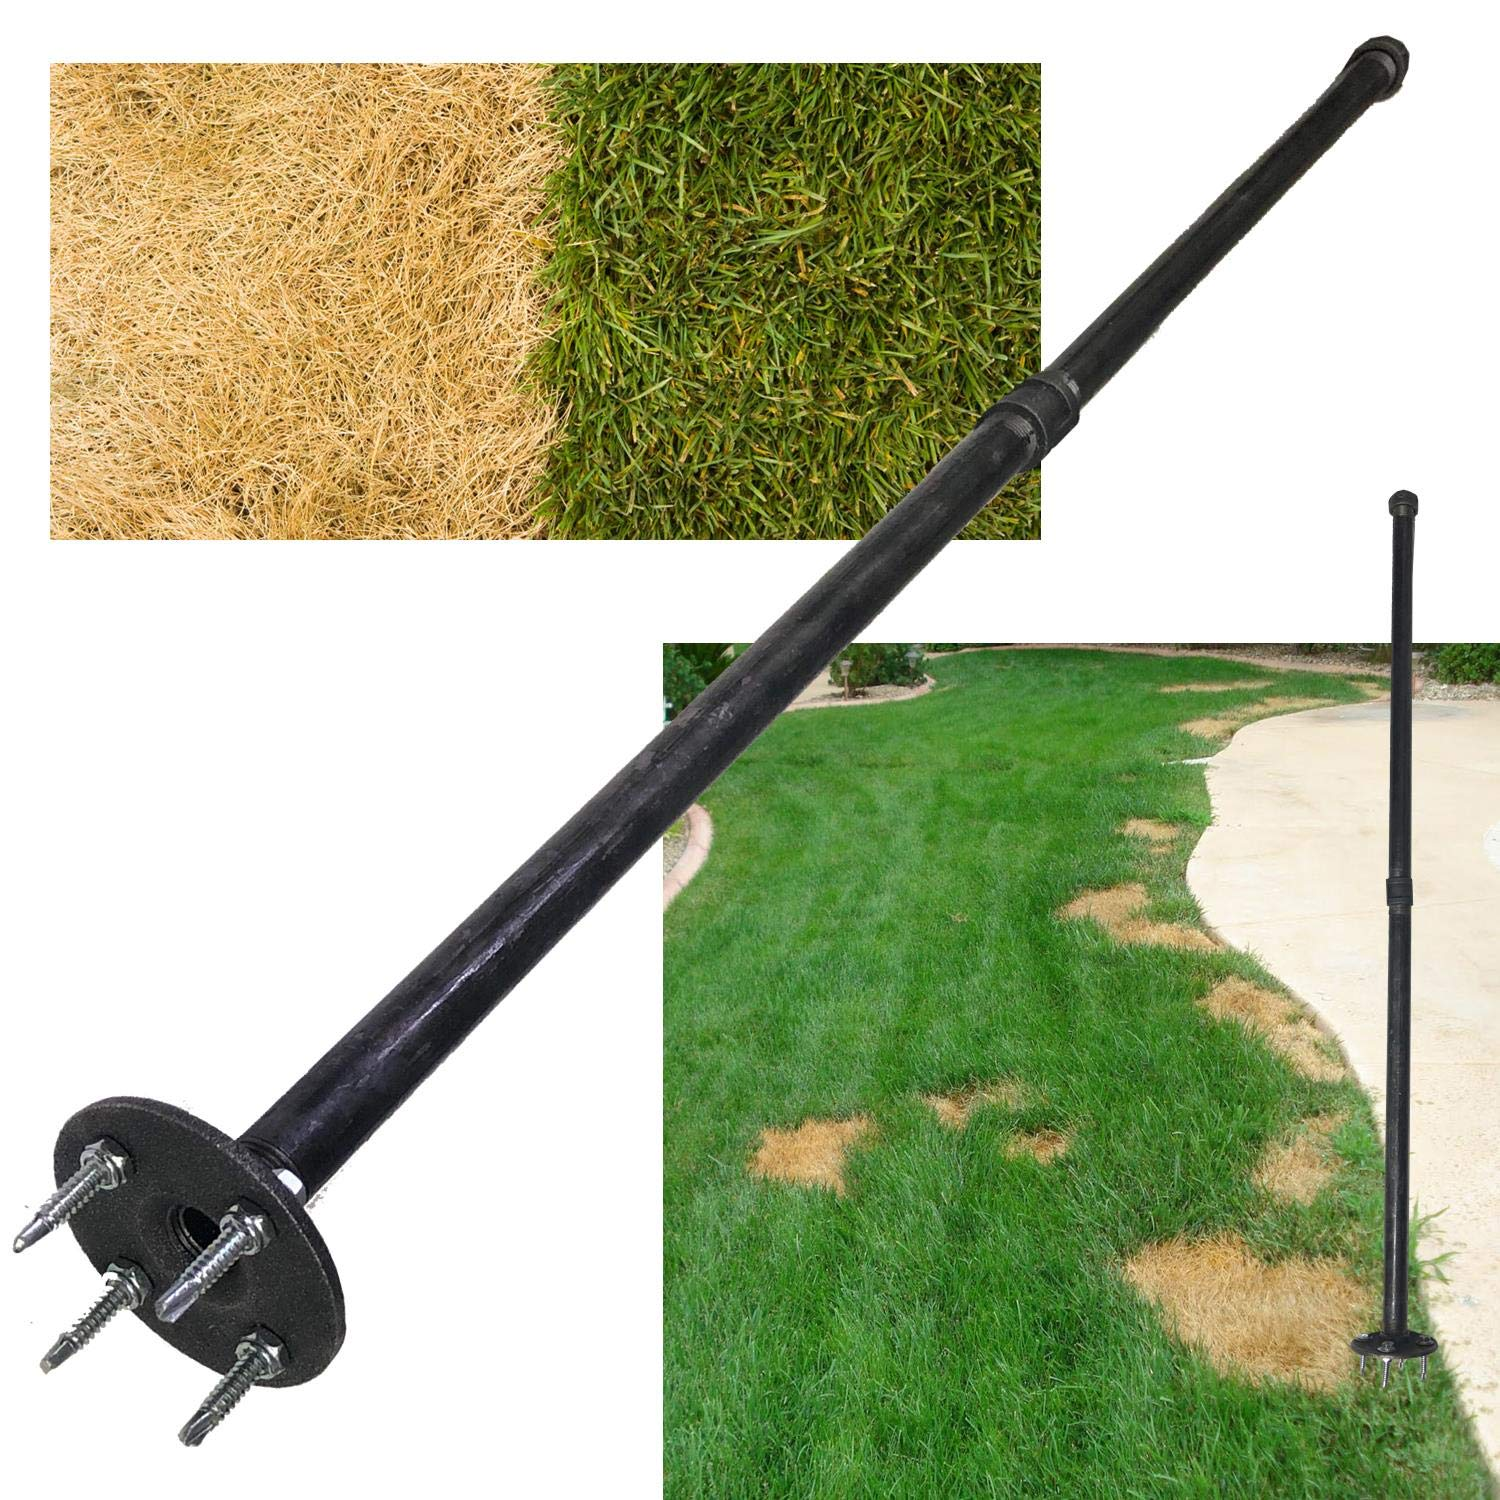 Keyfit Tools Grass Seed SPIKER Dog Spot & Bare Spot Seeding Tool. Get The Most Seed Germination with All Types of Seed & Patch Scotts EZ Seed Repairs Dead Spots Dog Damage Lawn Turf & Grass Repair by Keyfit Tools (Image #1)